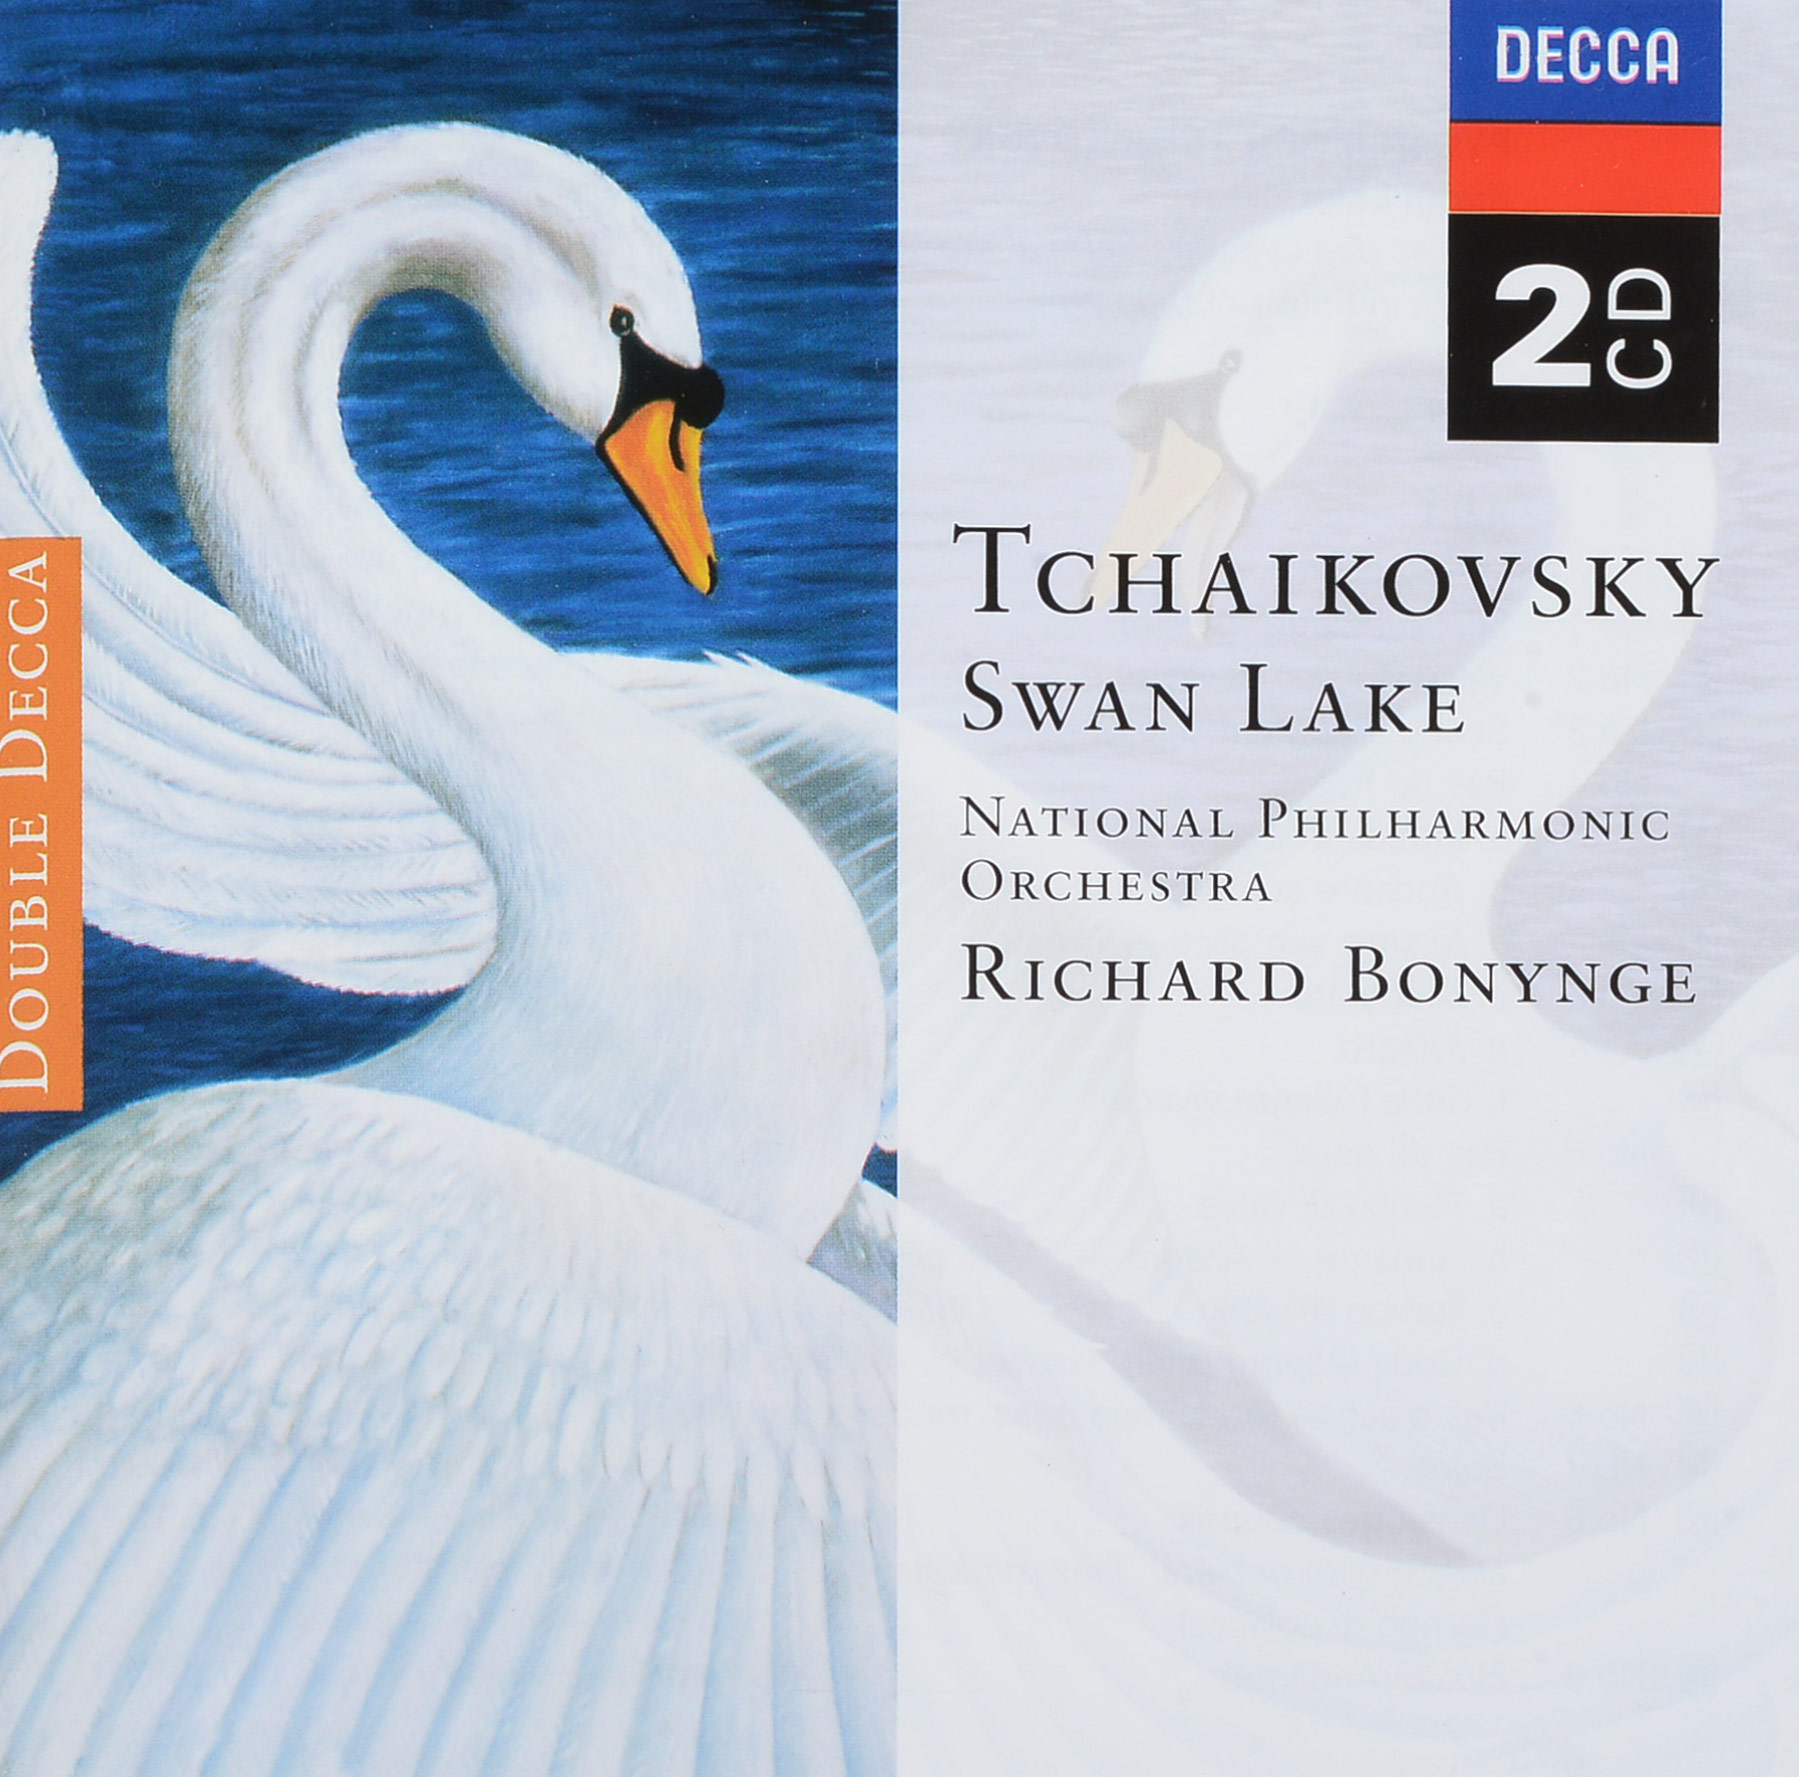 Richard Bonynge. Tchaikovsky: Swan Lake (2 CD)